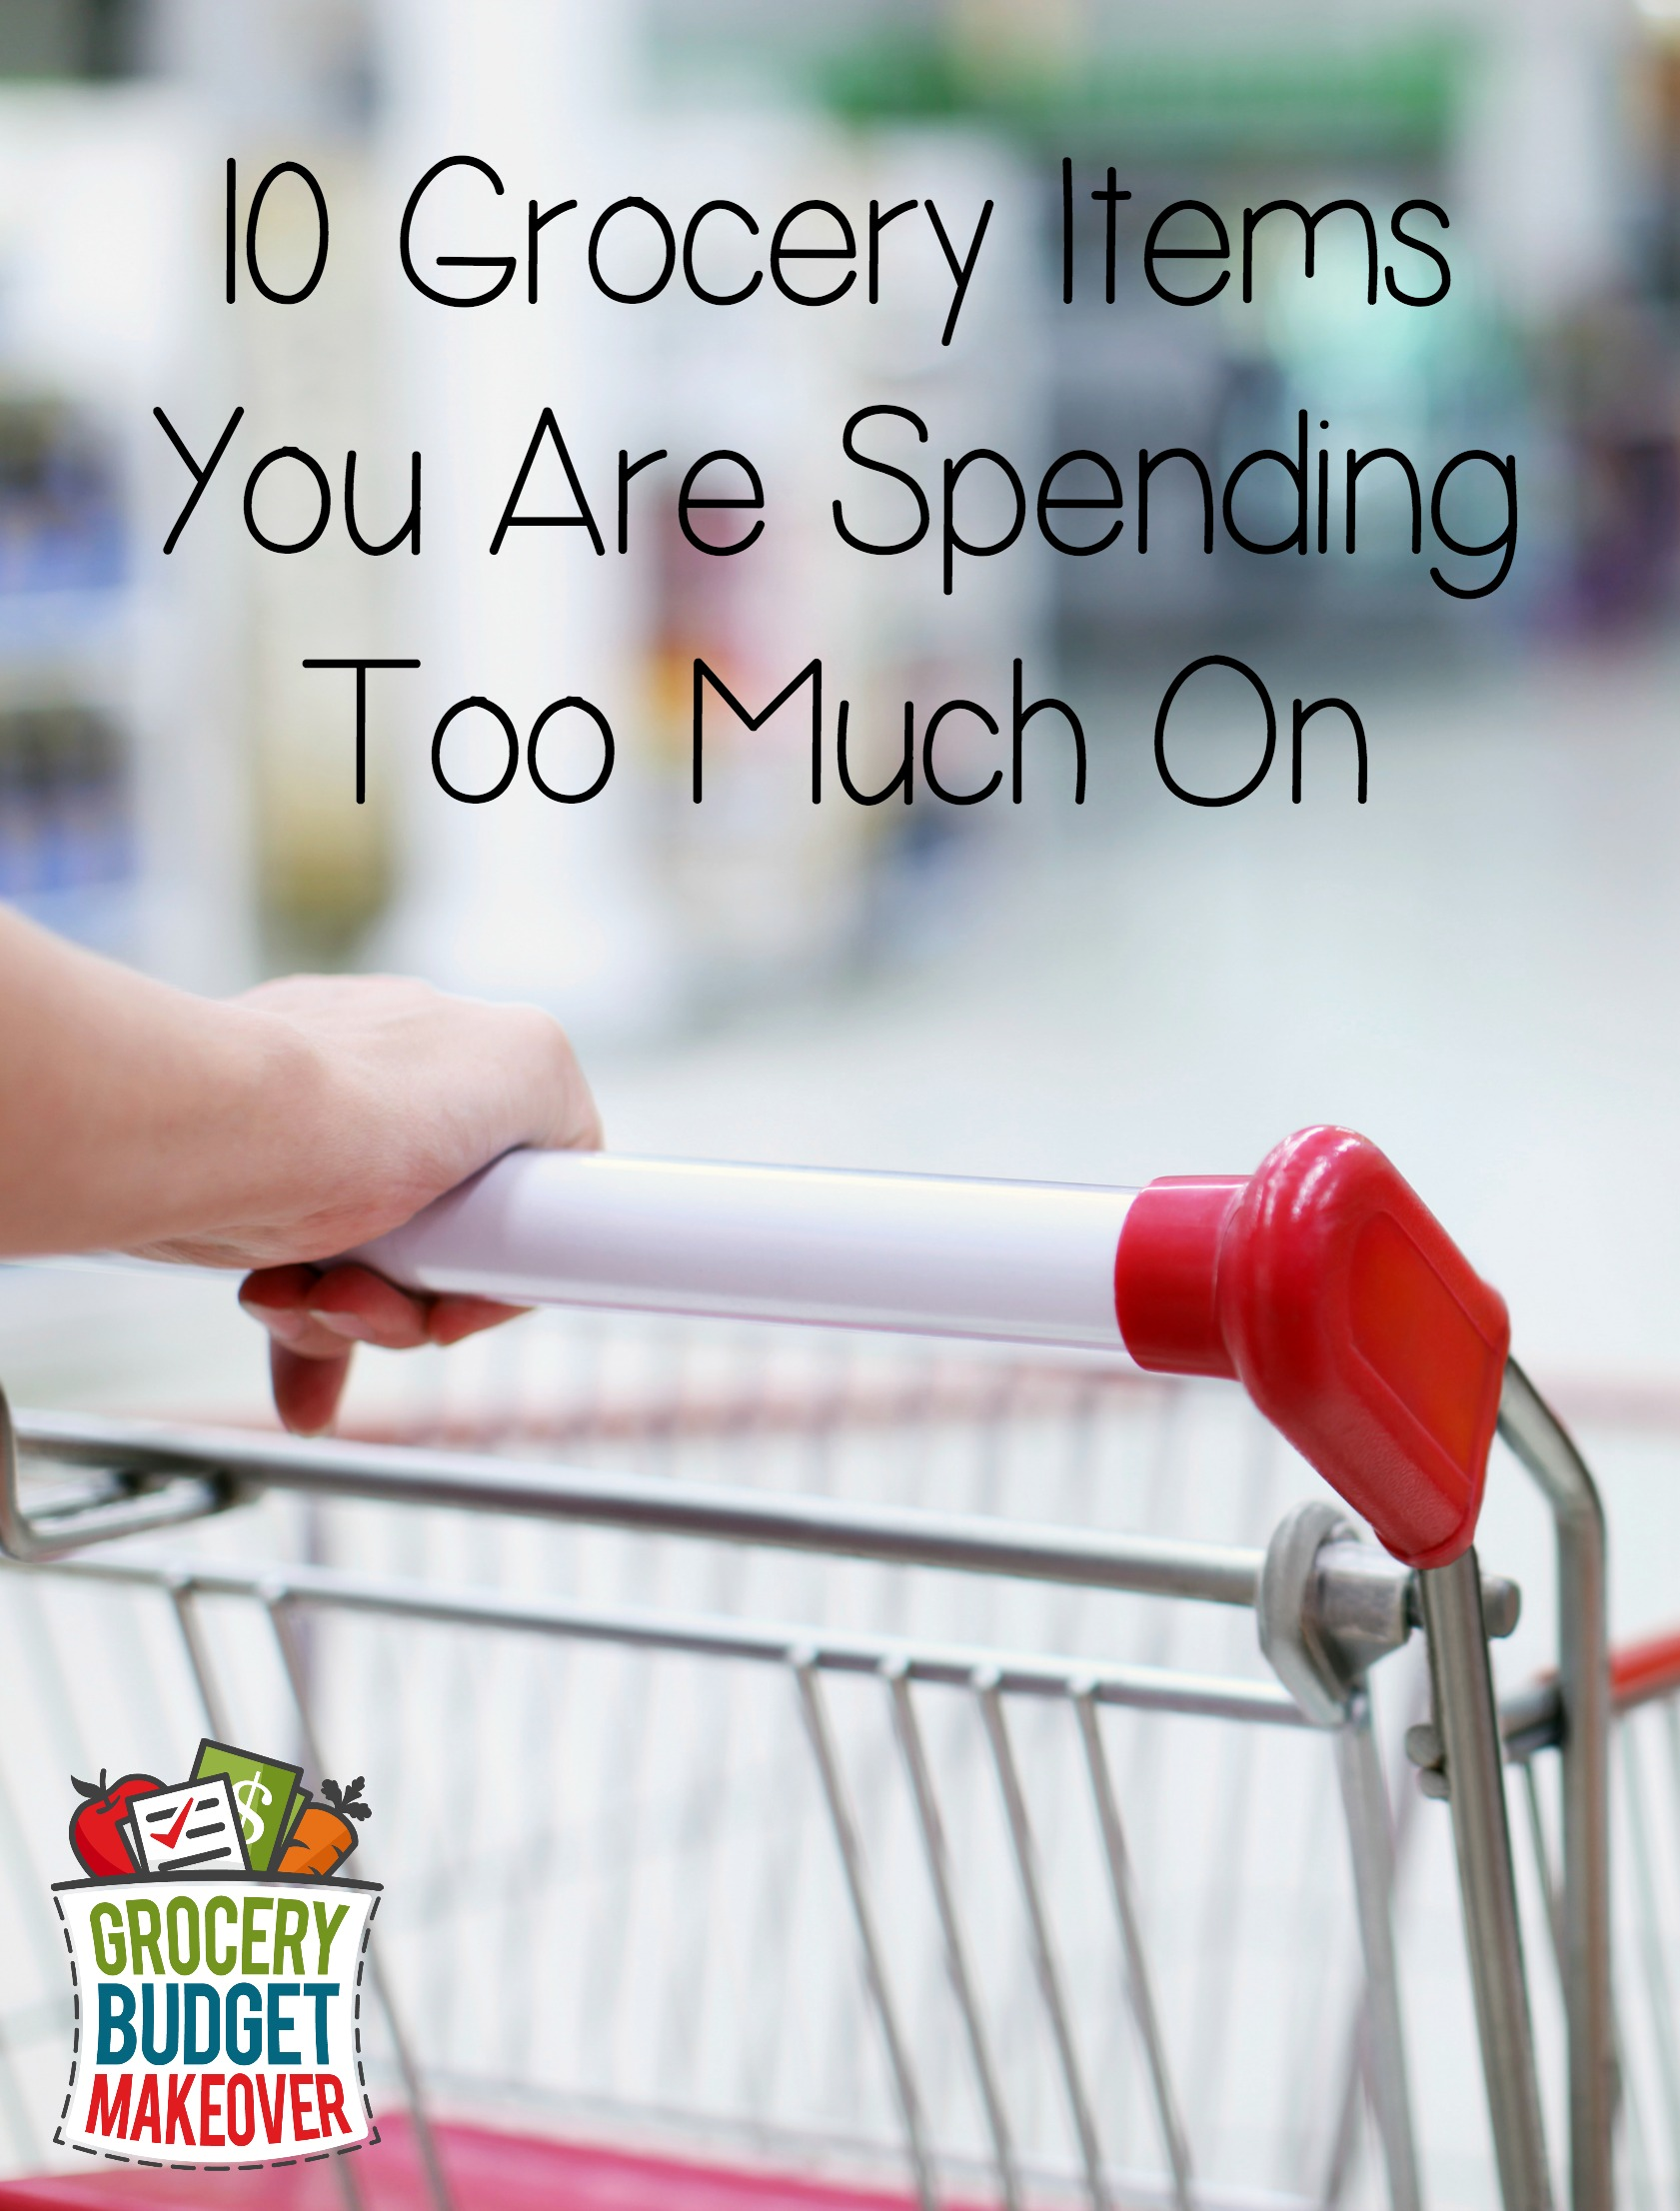 10 Grocery Items Spending Too Much